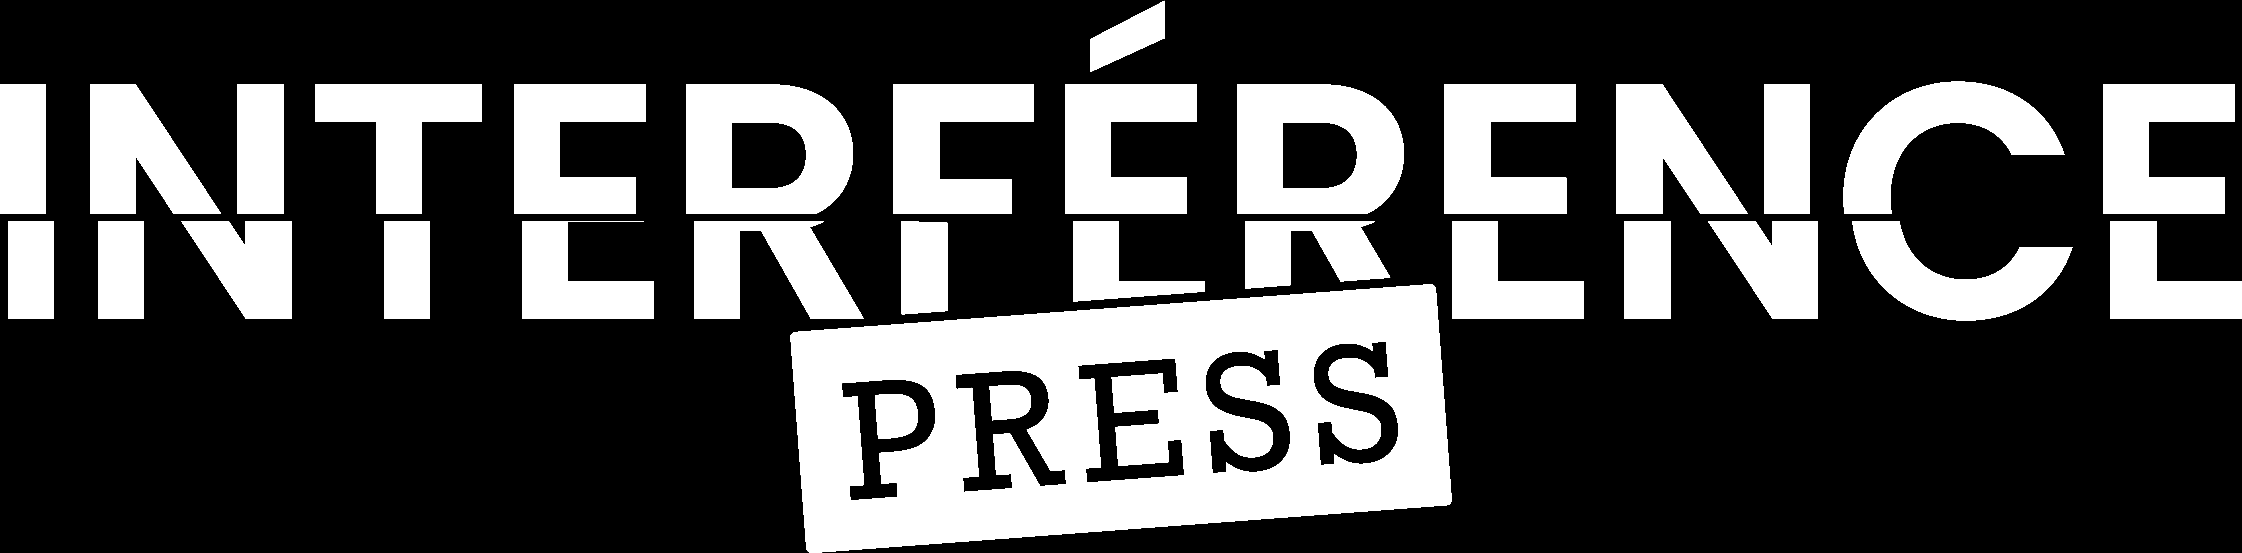 INTERFÉRENCE PRESS